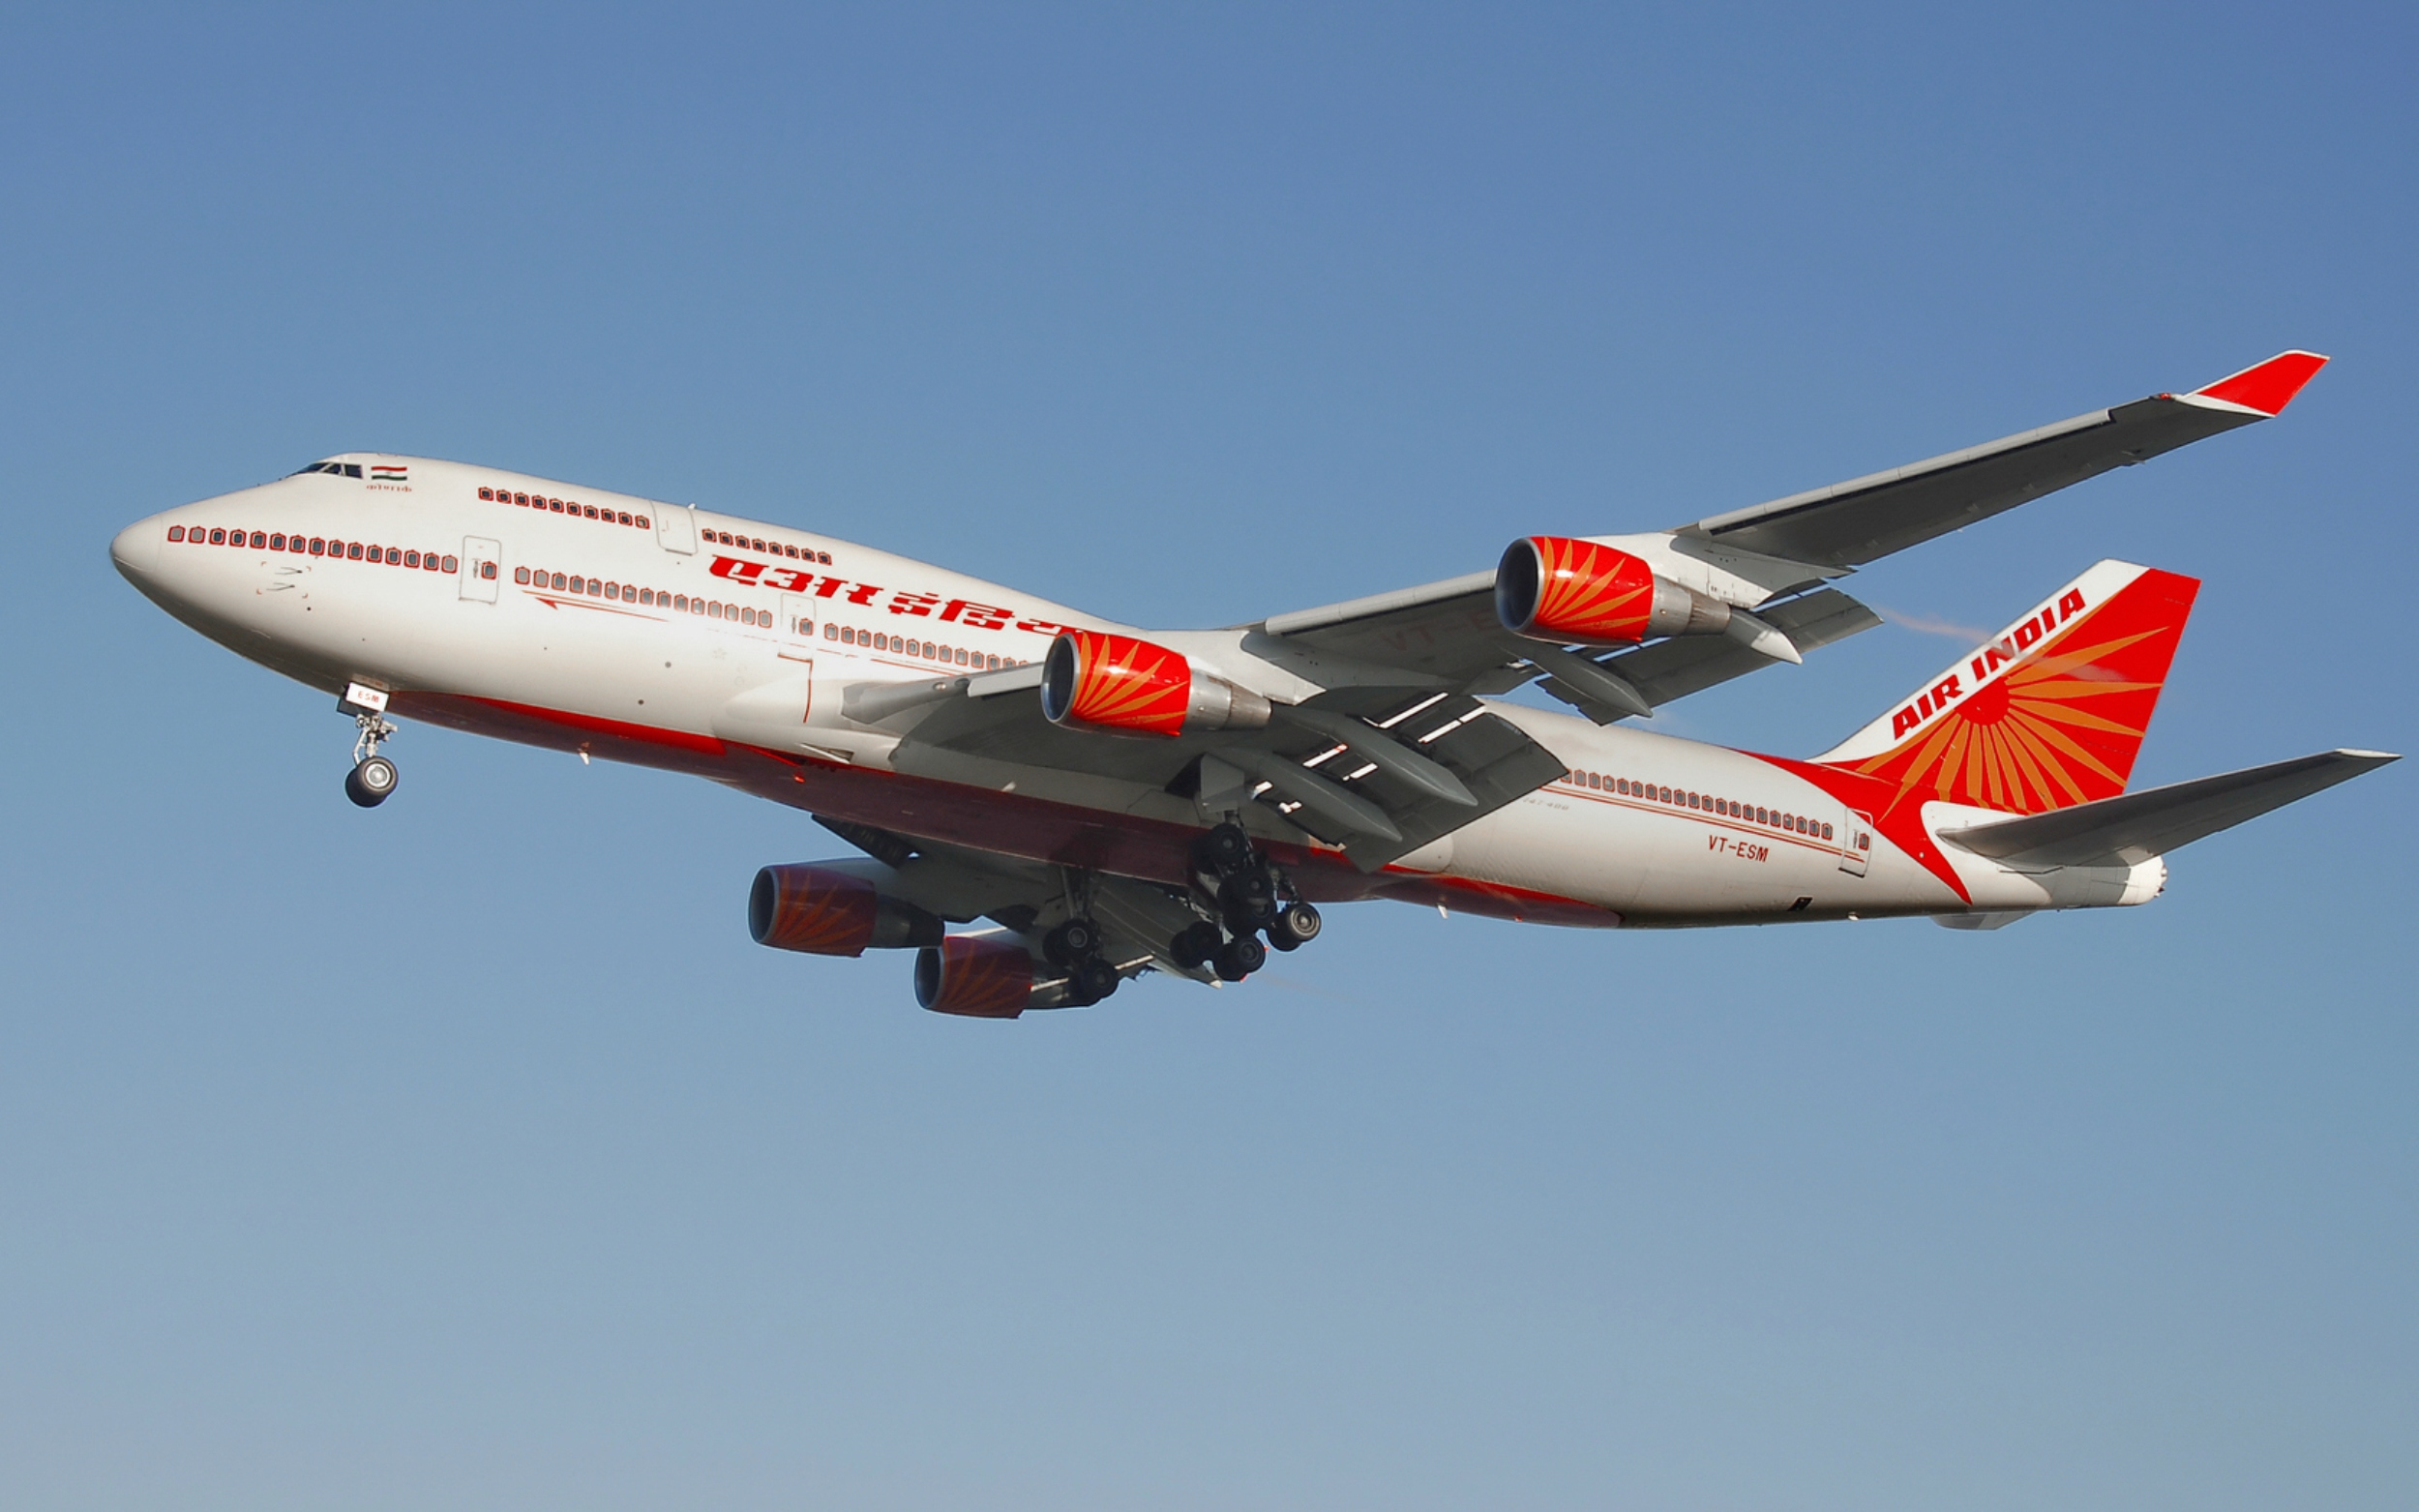 Air India Flight 182 Click To View